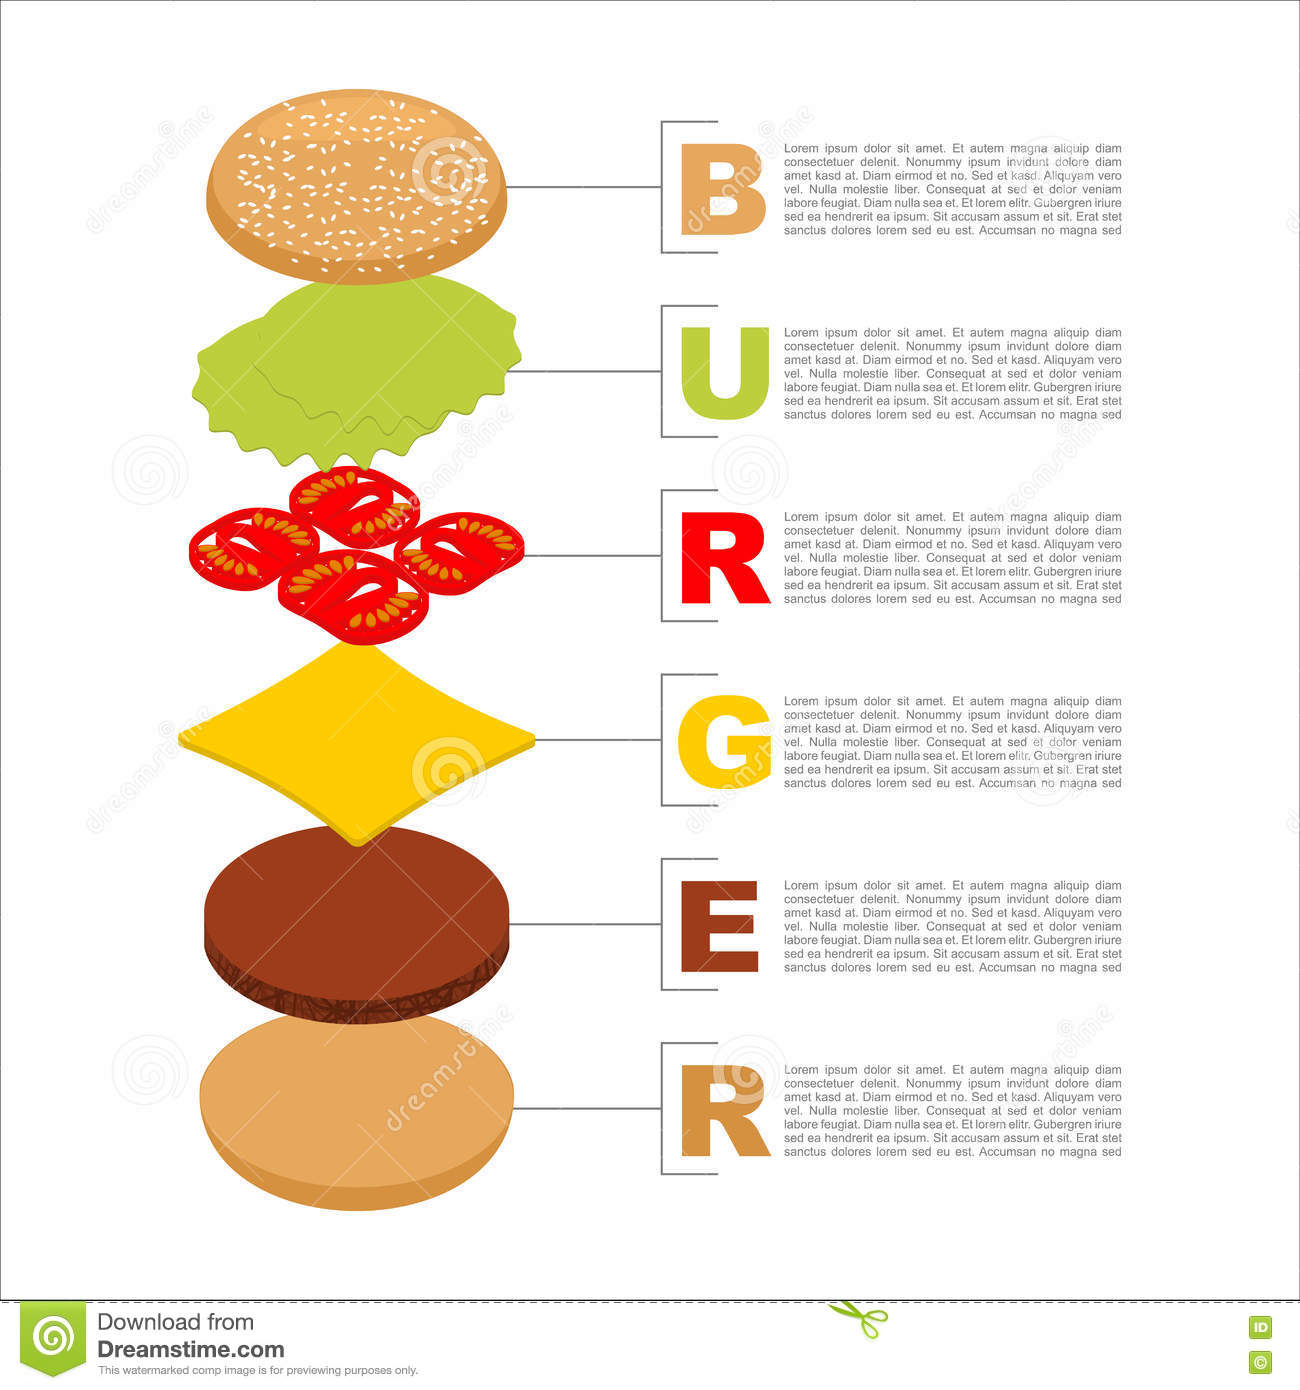 cheeseburger essay Cheeseburger essay, obama s science adviser, in an essay just unearthed by zombietime (a blog that.